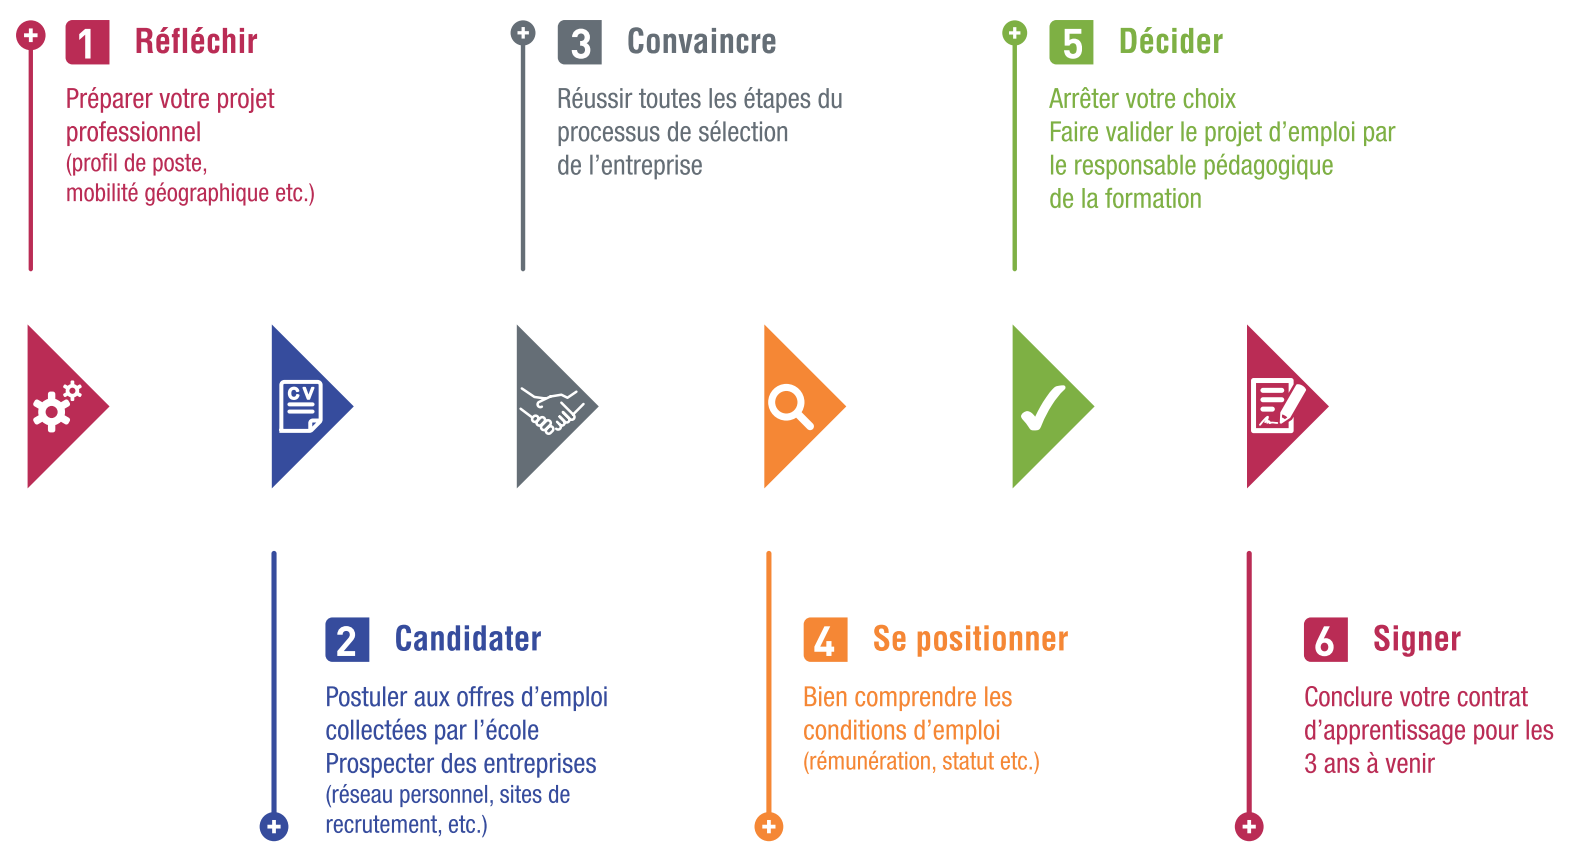 Etapes du contrat d'apprentissage